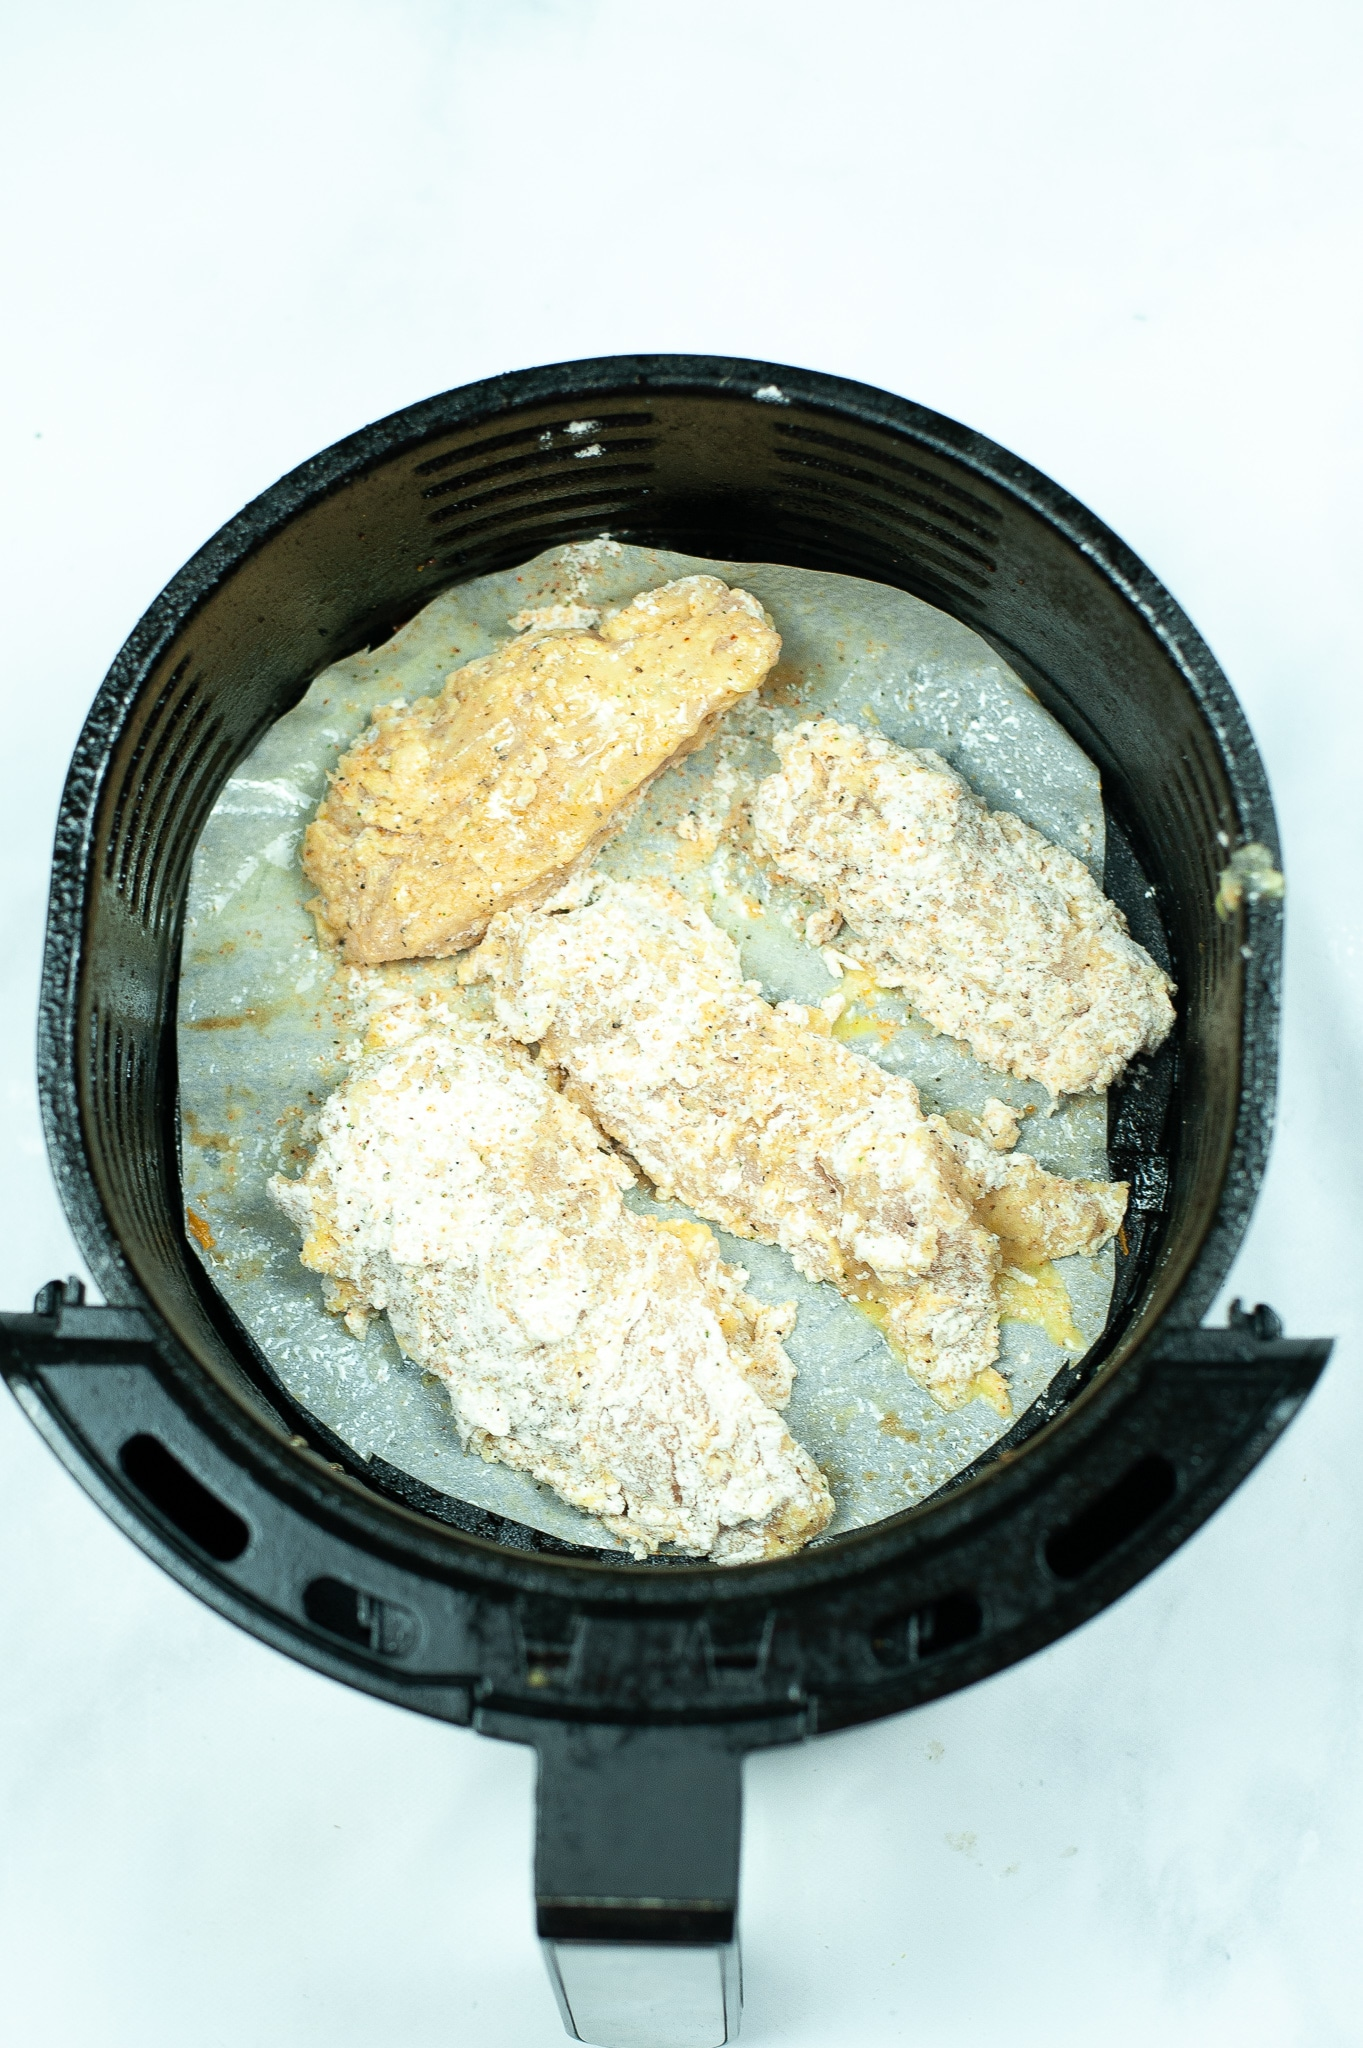 coated chicken breast strips being cooked in an air fryer